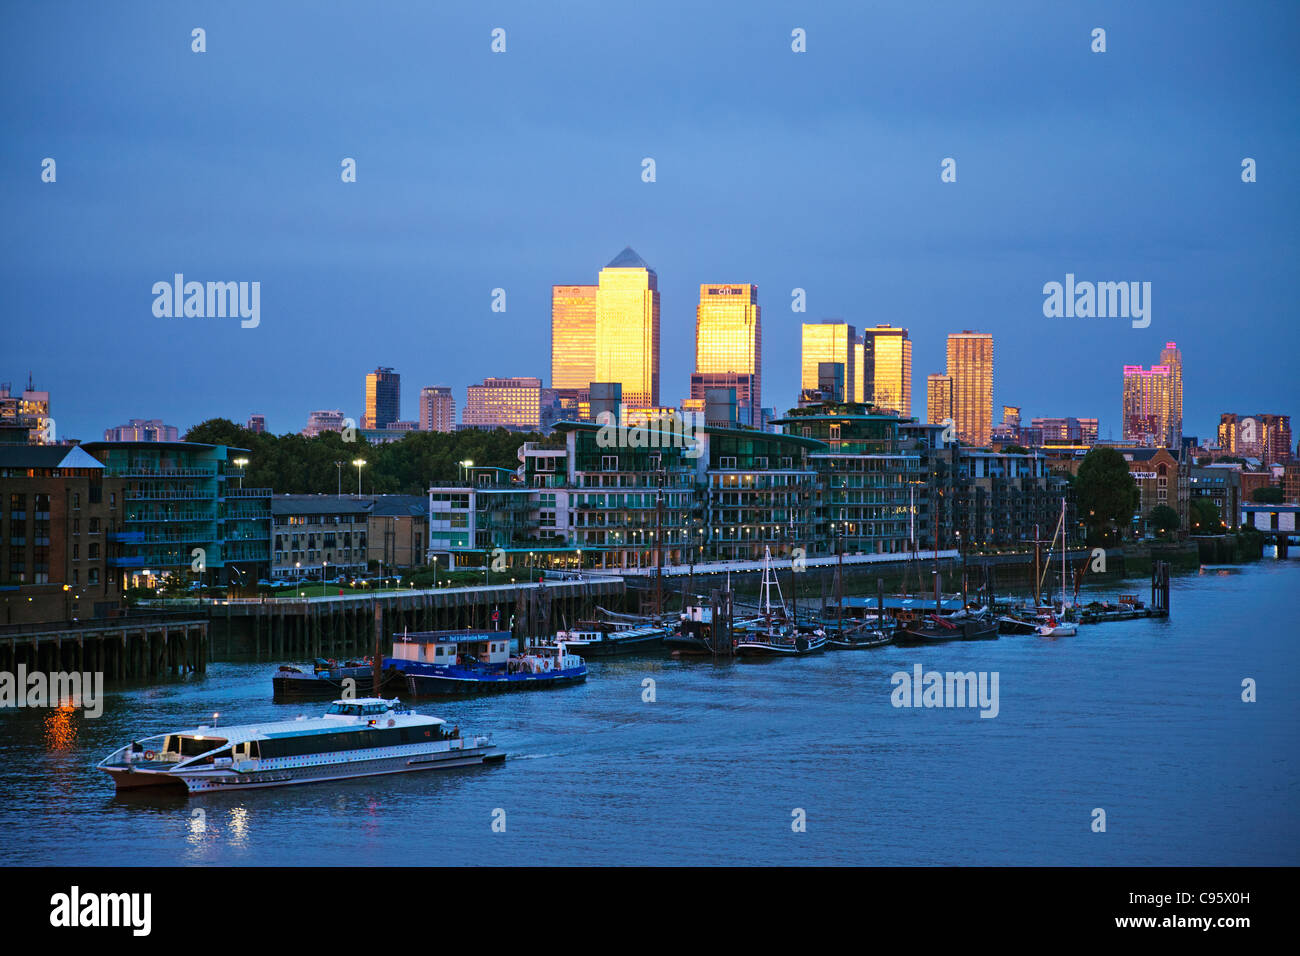 England, London, Docklands Skyline and River Thames - Stock Image